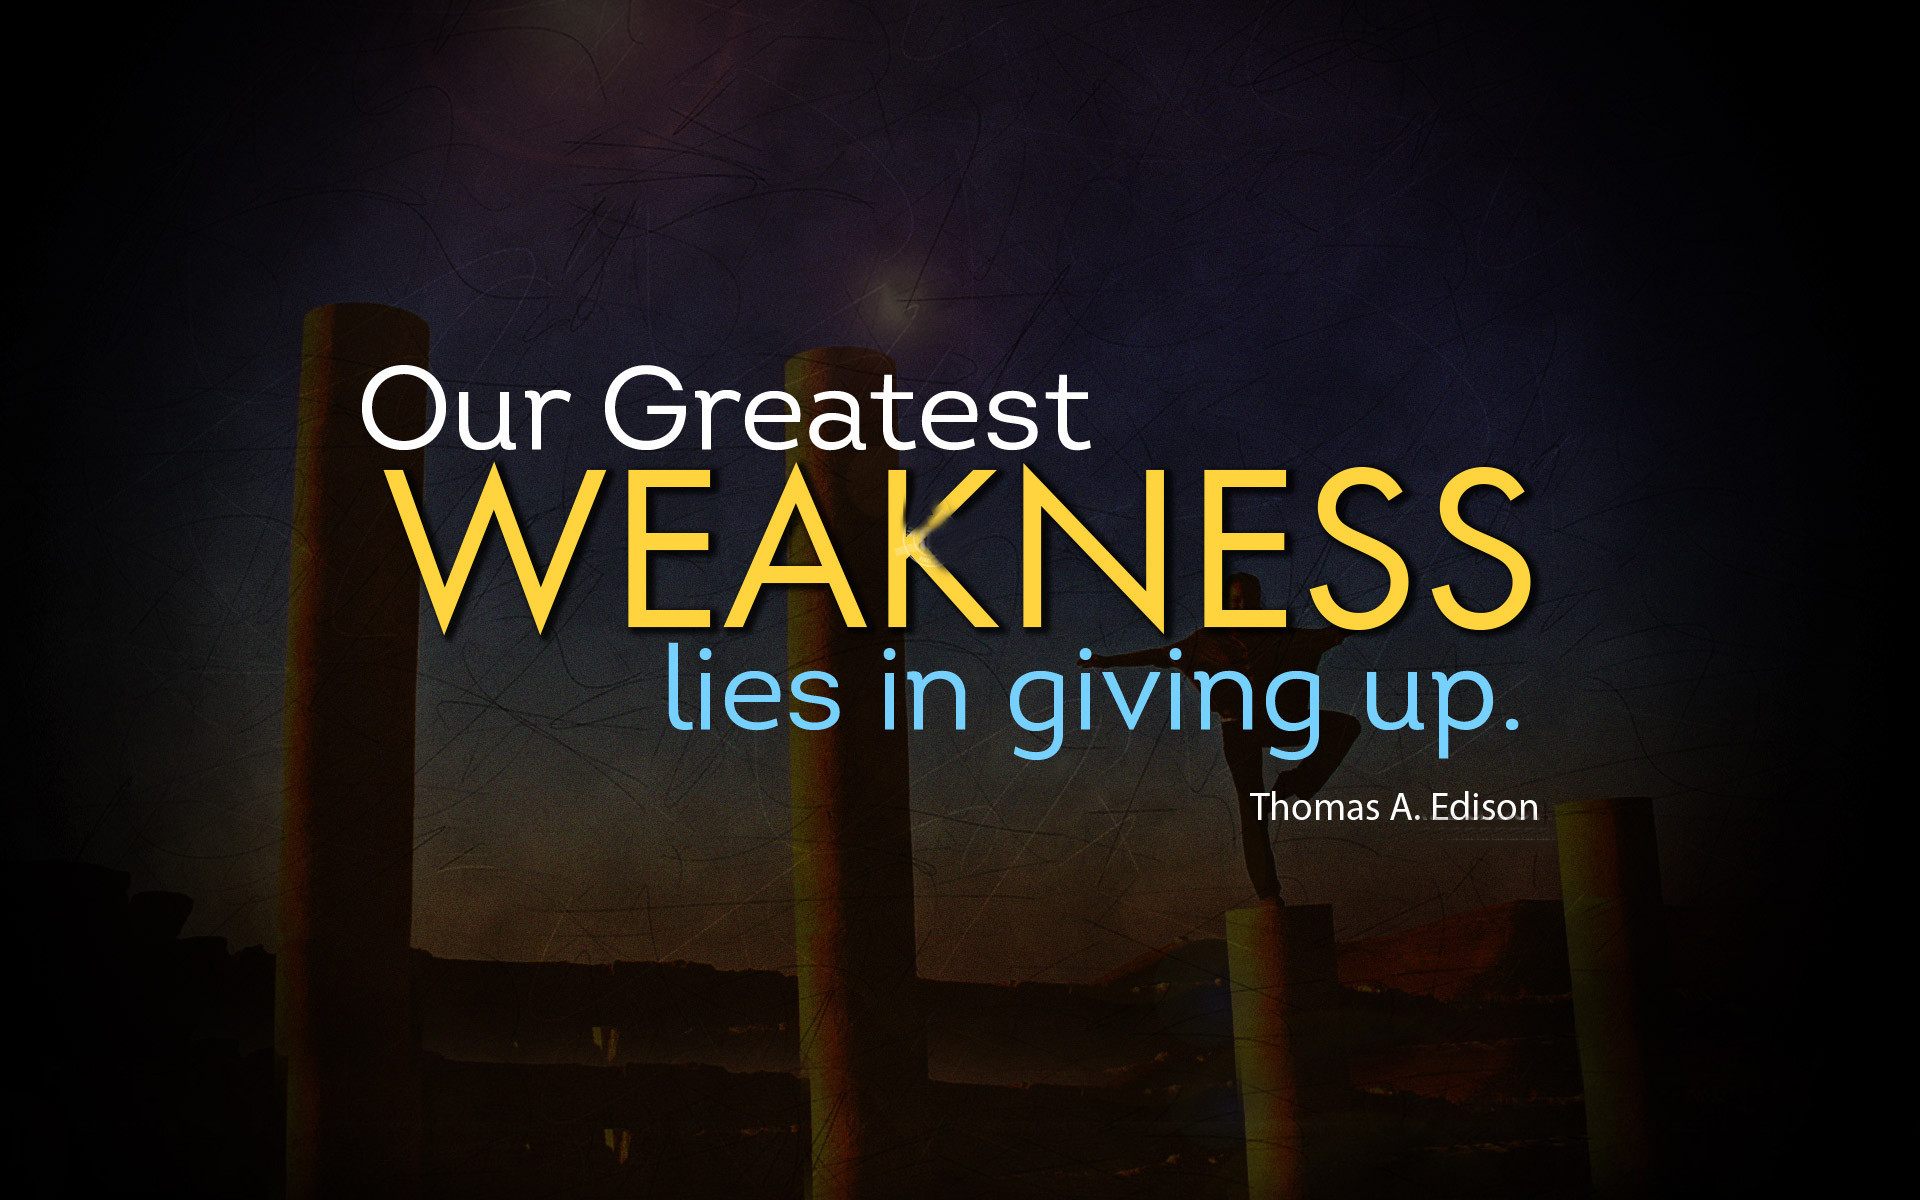 Inspirational Wallpaper on Weakness by Thomas A. Edison